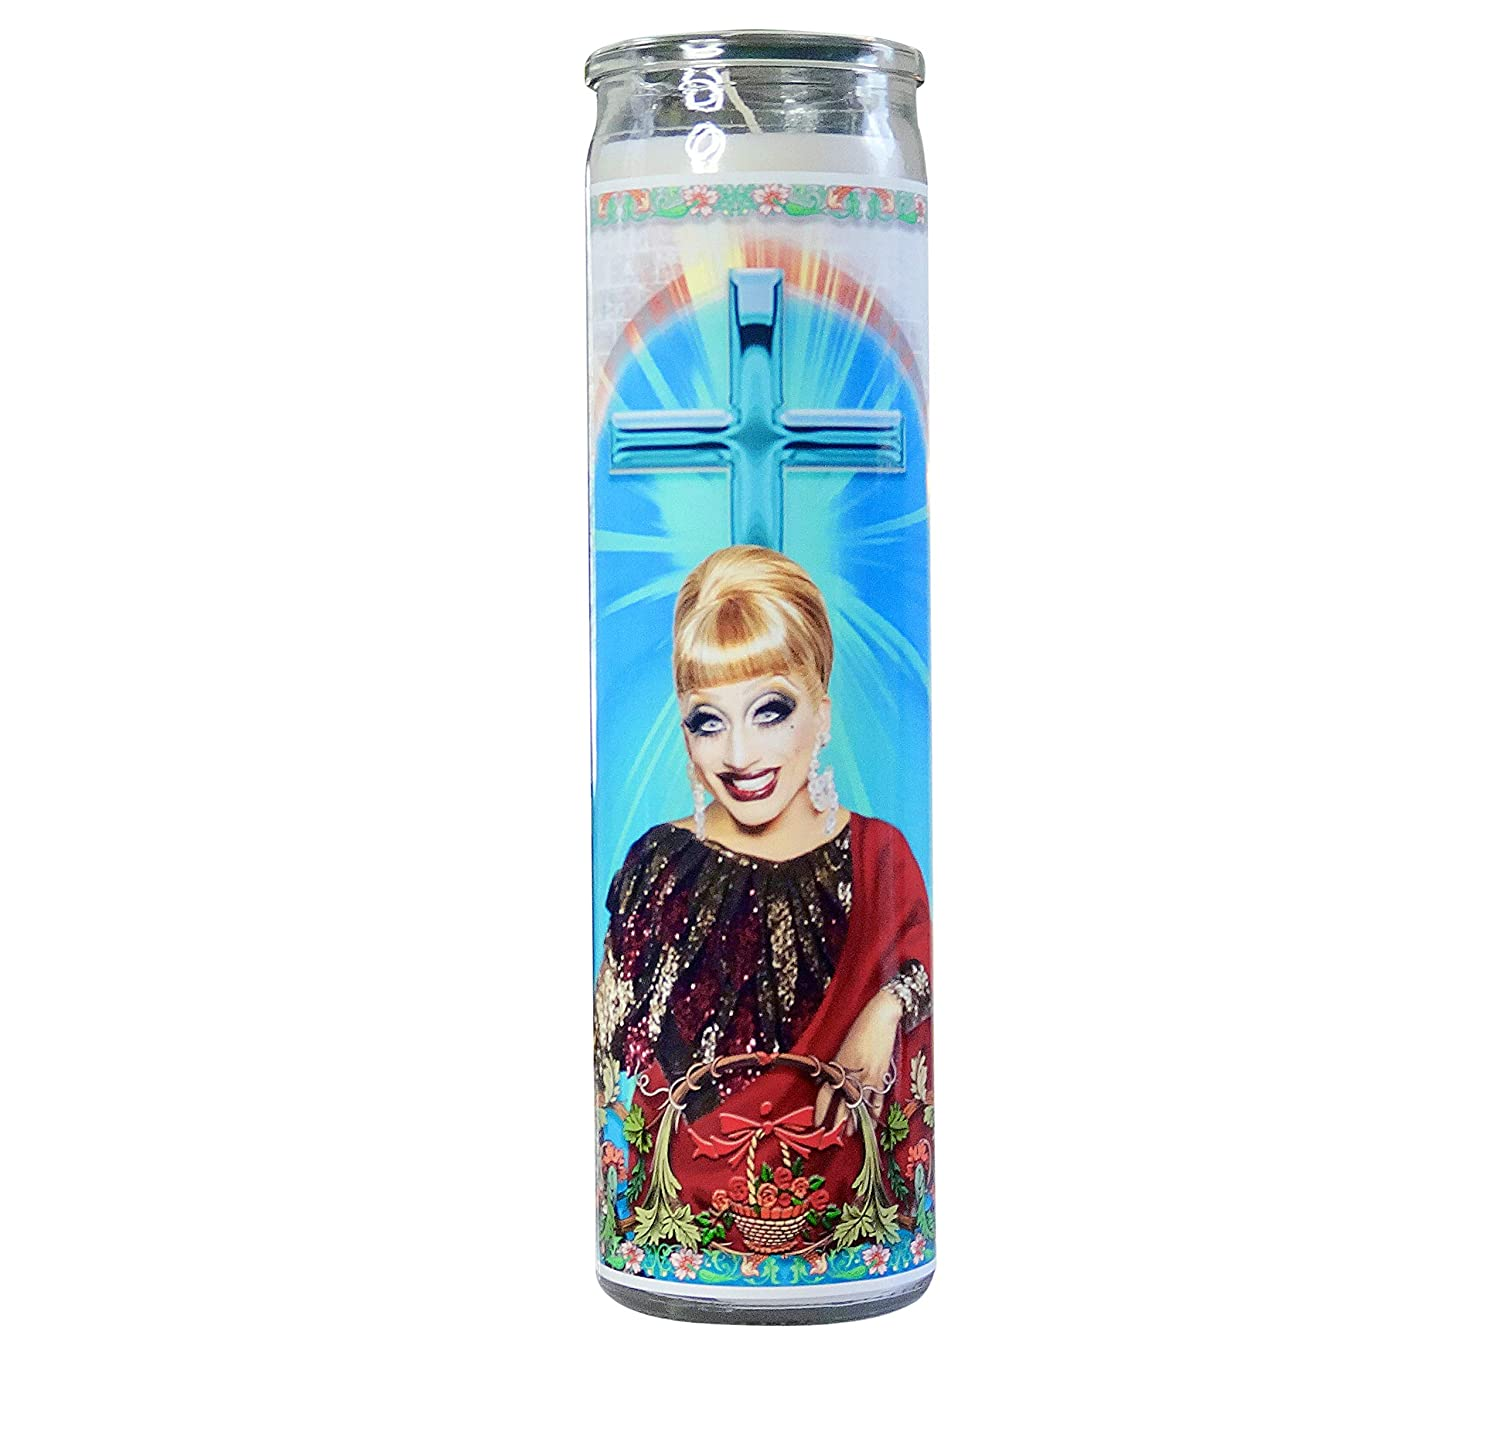 6f0bdeccb Amazon.com  My Pen15 Club Bianca Del Rio Celebrity Drag Queen Prayer  Candle  Home   Kitchen